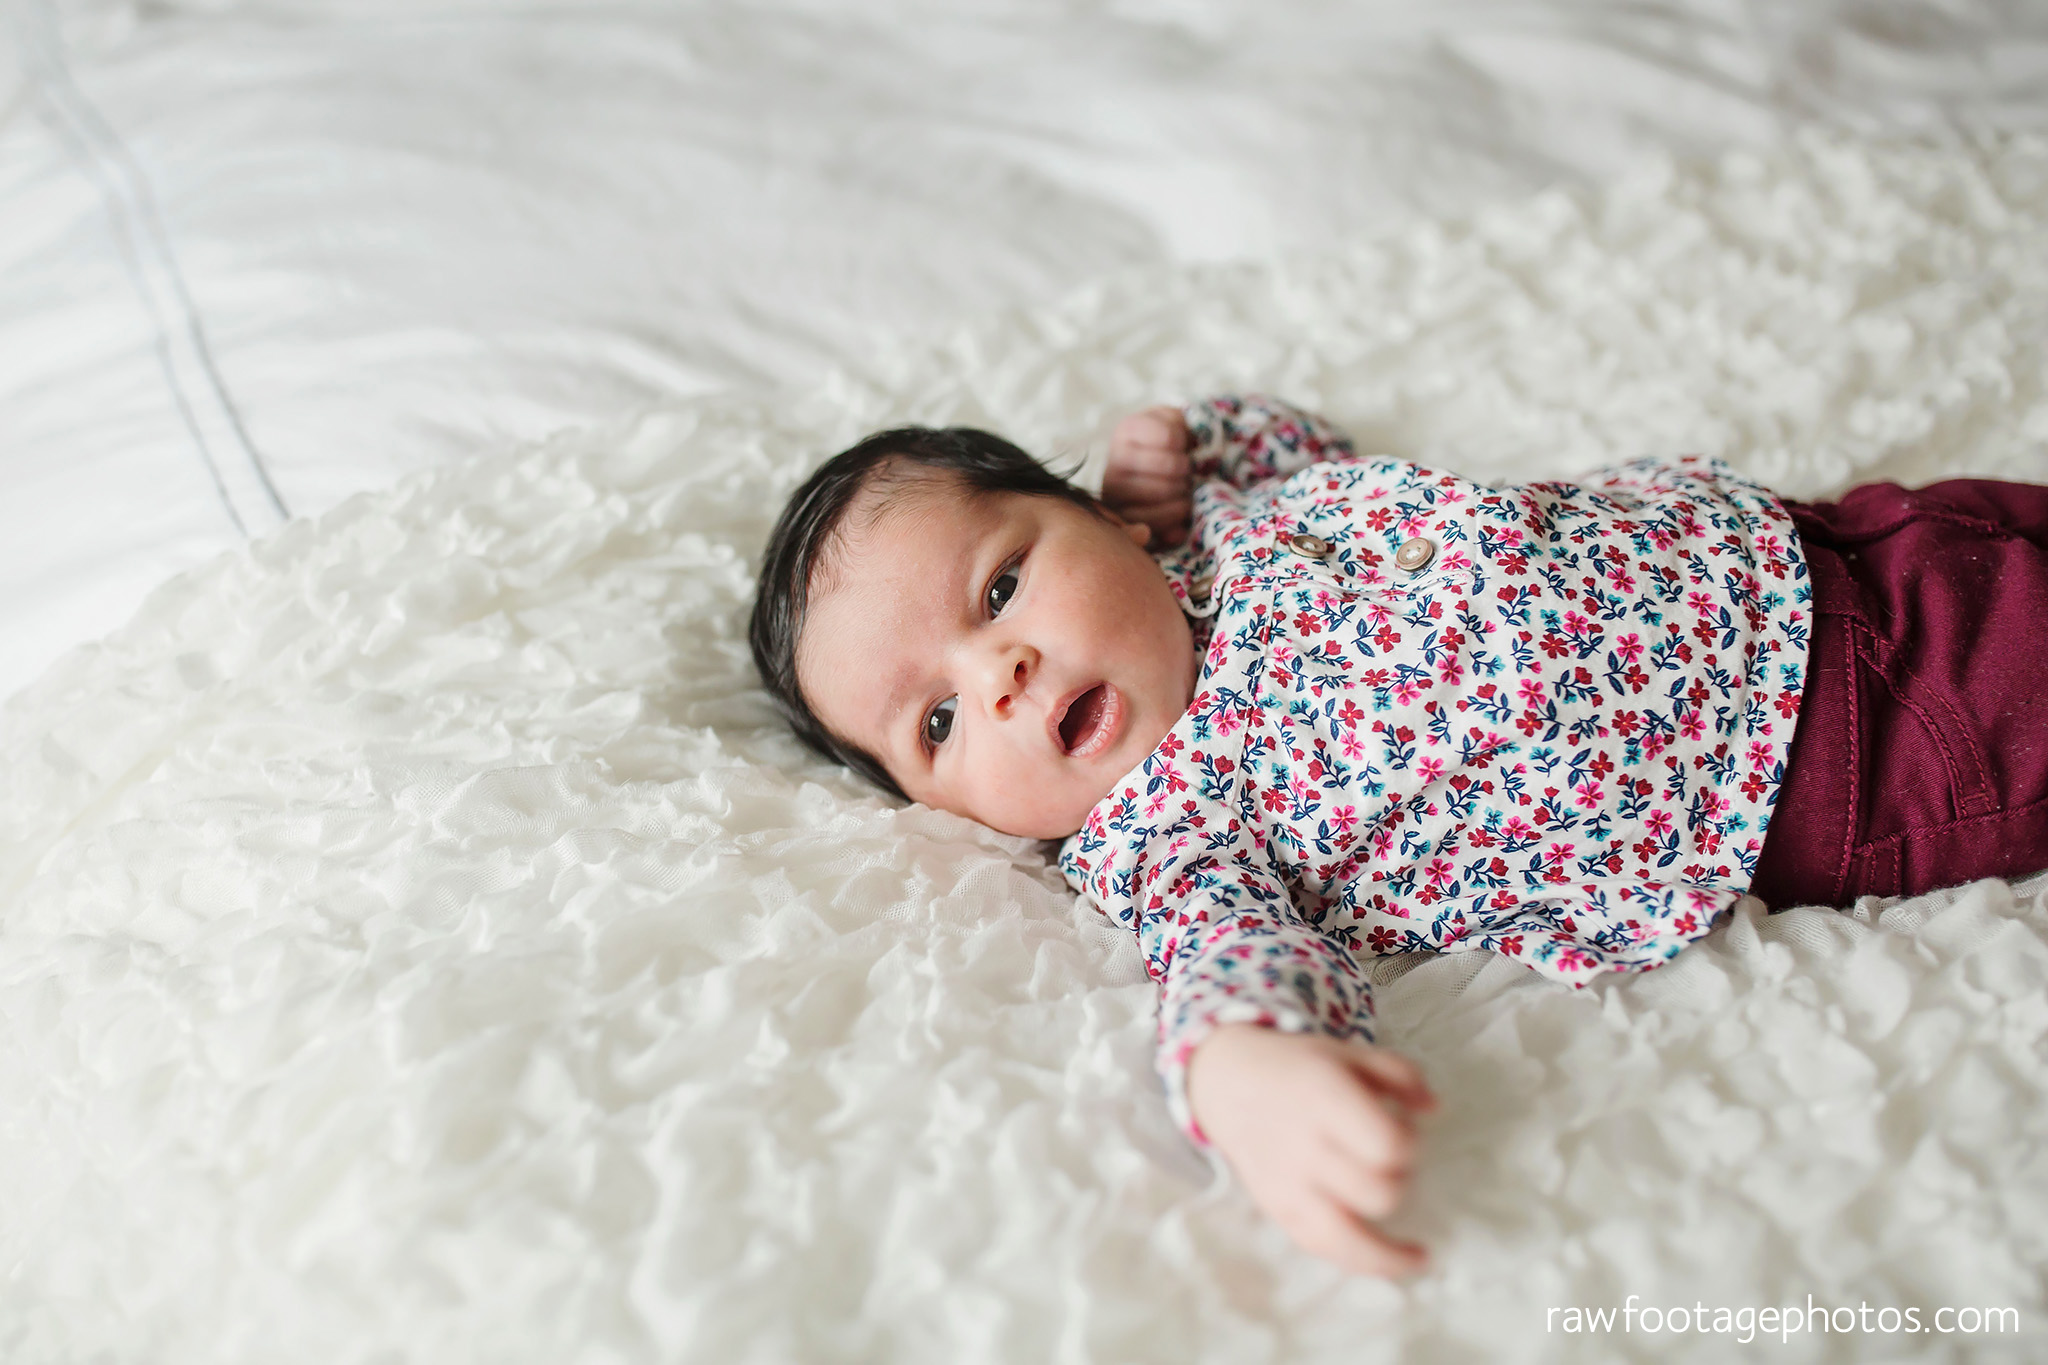 london_ontario_newborn_lifestyle_photographer-raw_footage_photography010.jpg